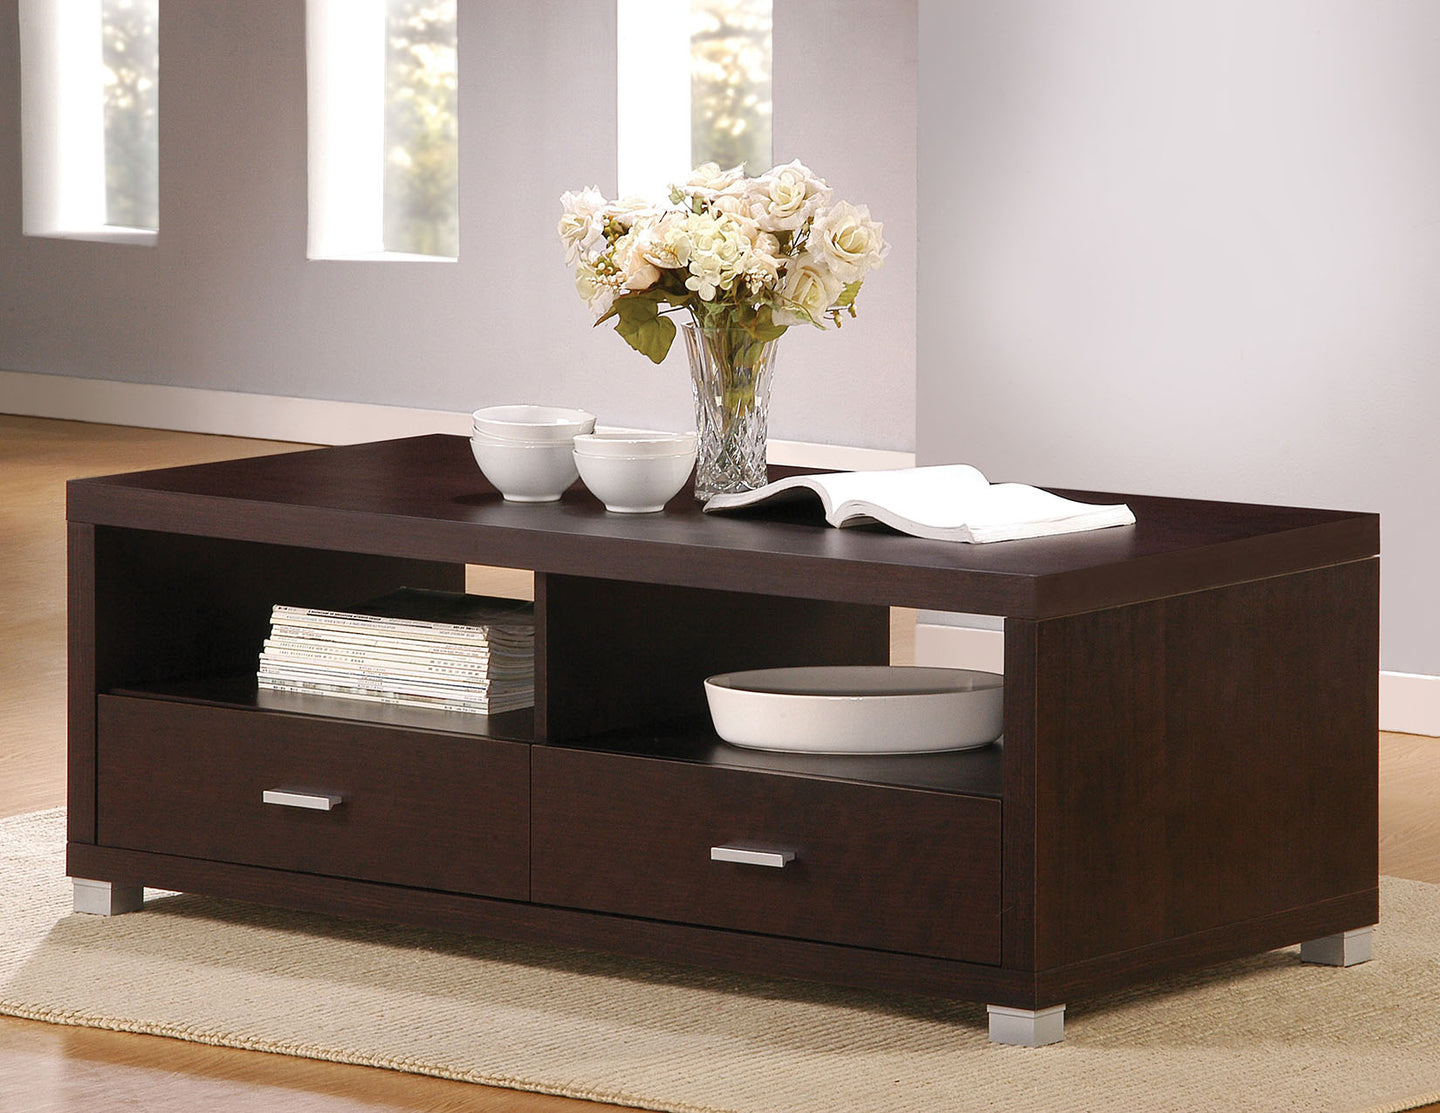 Acme 06612 Tustin Espresso Coffee Table with Drawers